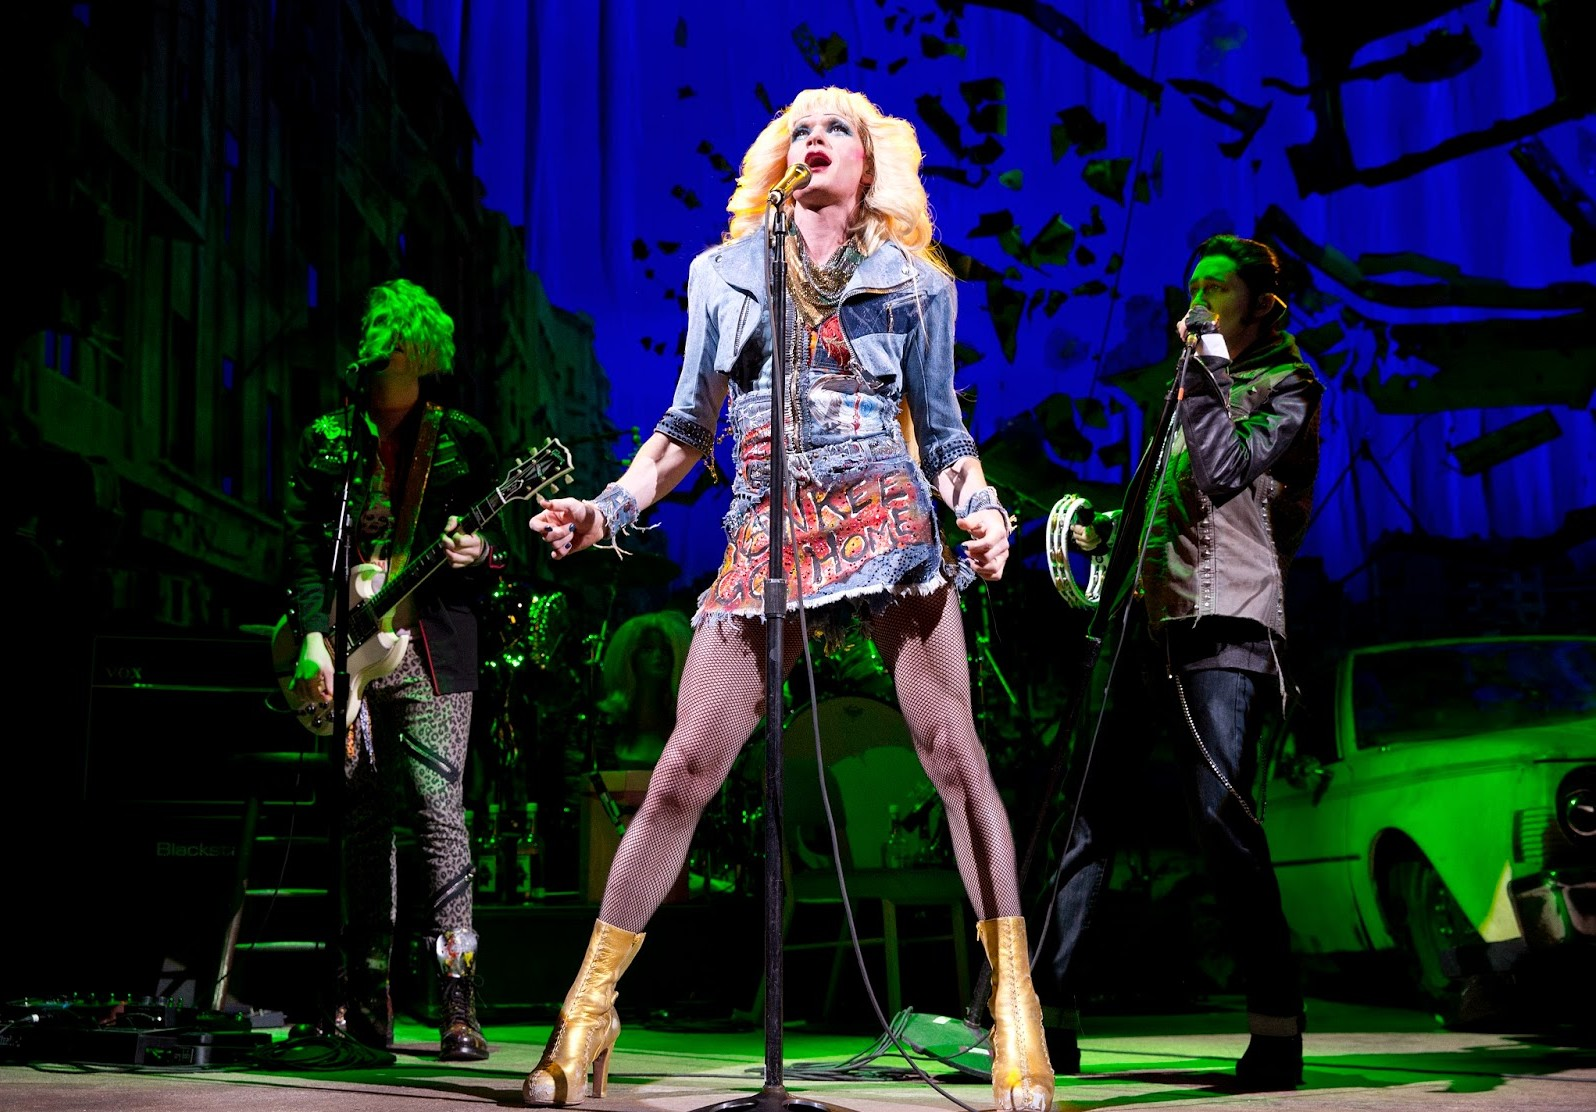 Neil Patrick Harris as Hedwig, in the 2014 Broadway production at the Belasco Theater. (Photo: Joan Marcus/PR)